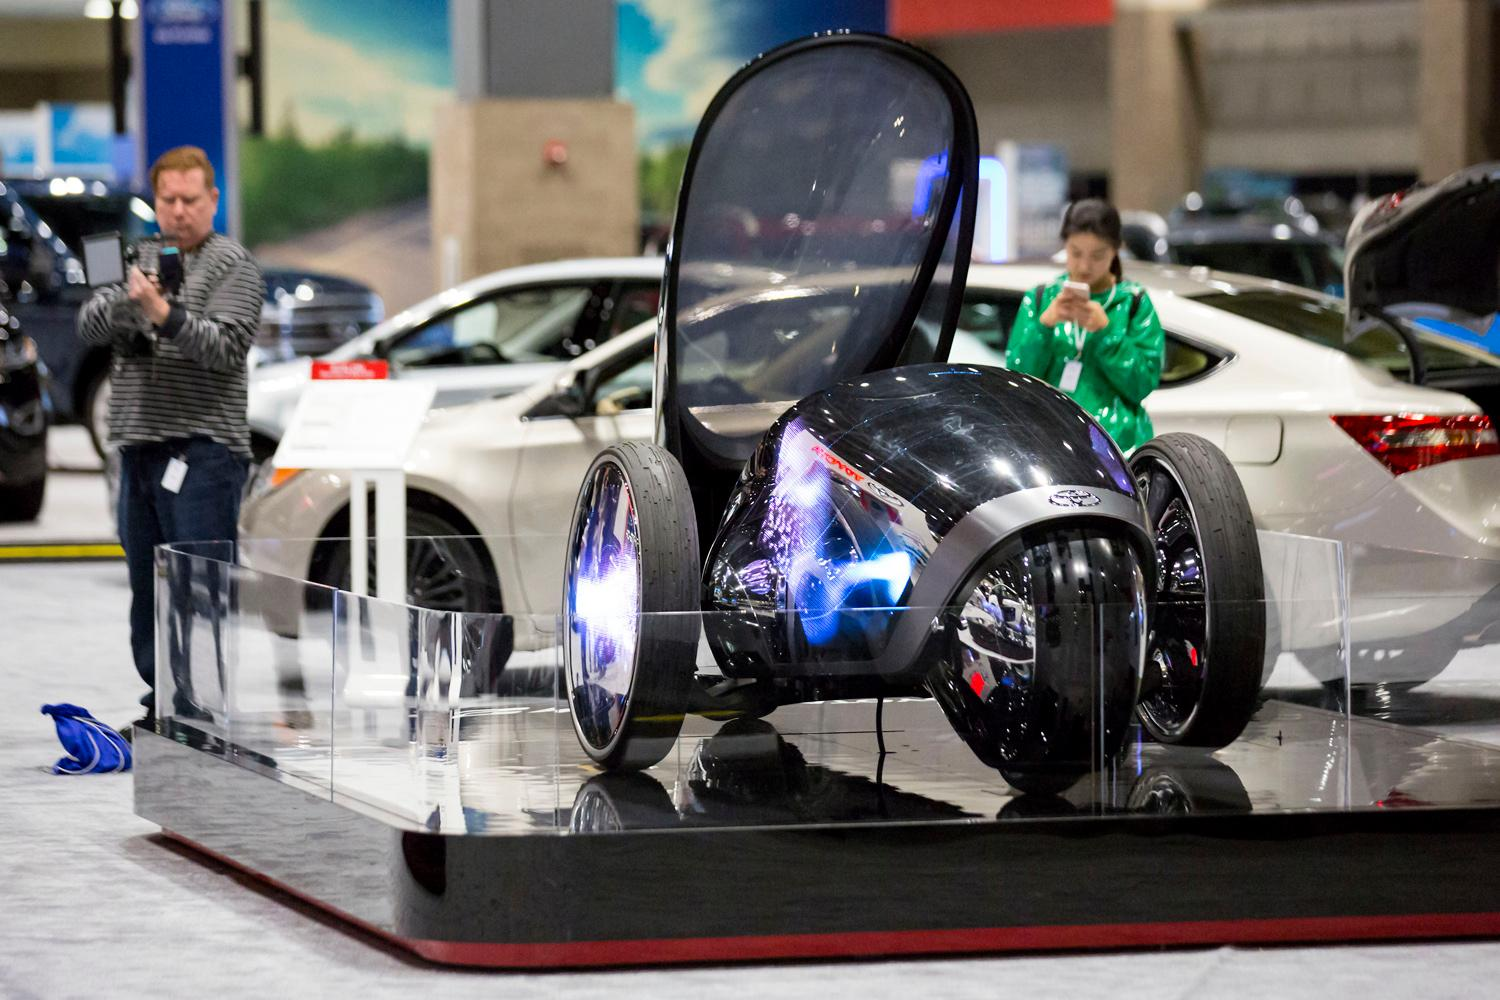 Toyota's 2018 FV2 concept vehicle has a fully customizable LCD surface and is drivable while standing, at the Seattle International Auto Show at the CenturyLink Event Center. (Sy Bean / Seattle Refined)